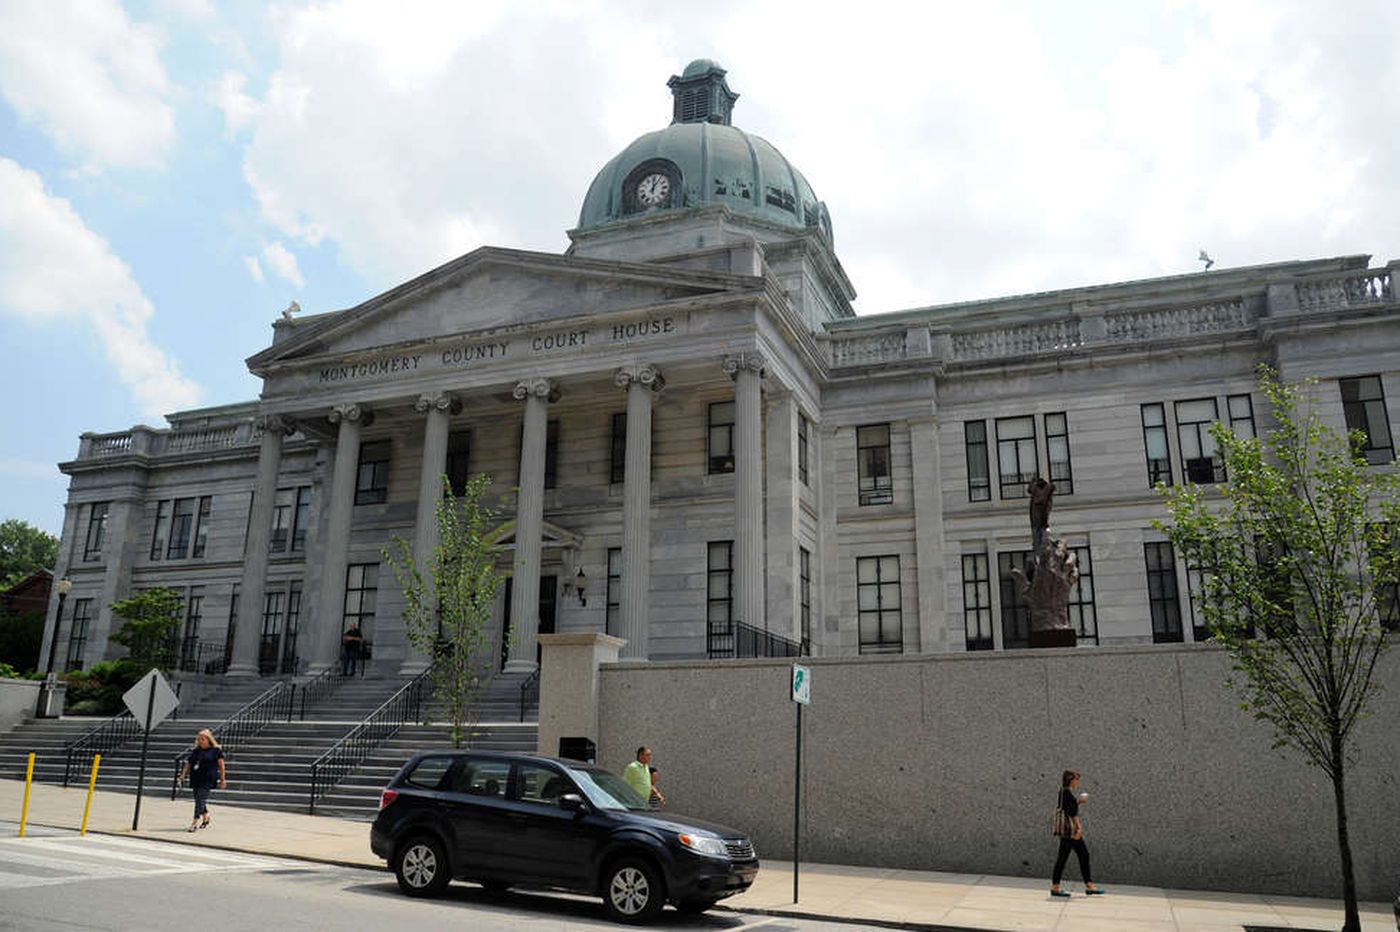 Philly Building Trades angling to ensure jobs on massive Norristown courthouse renovation